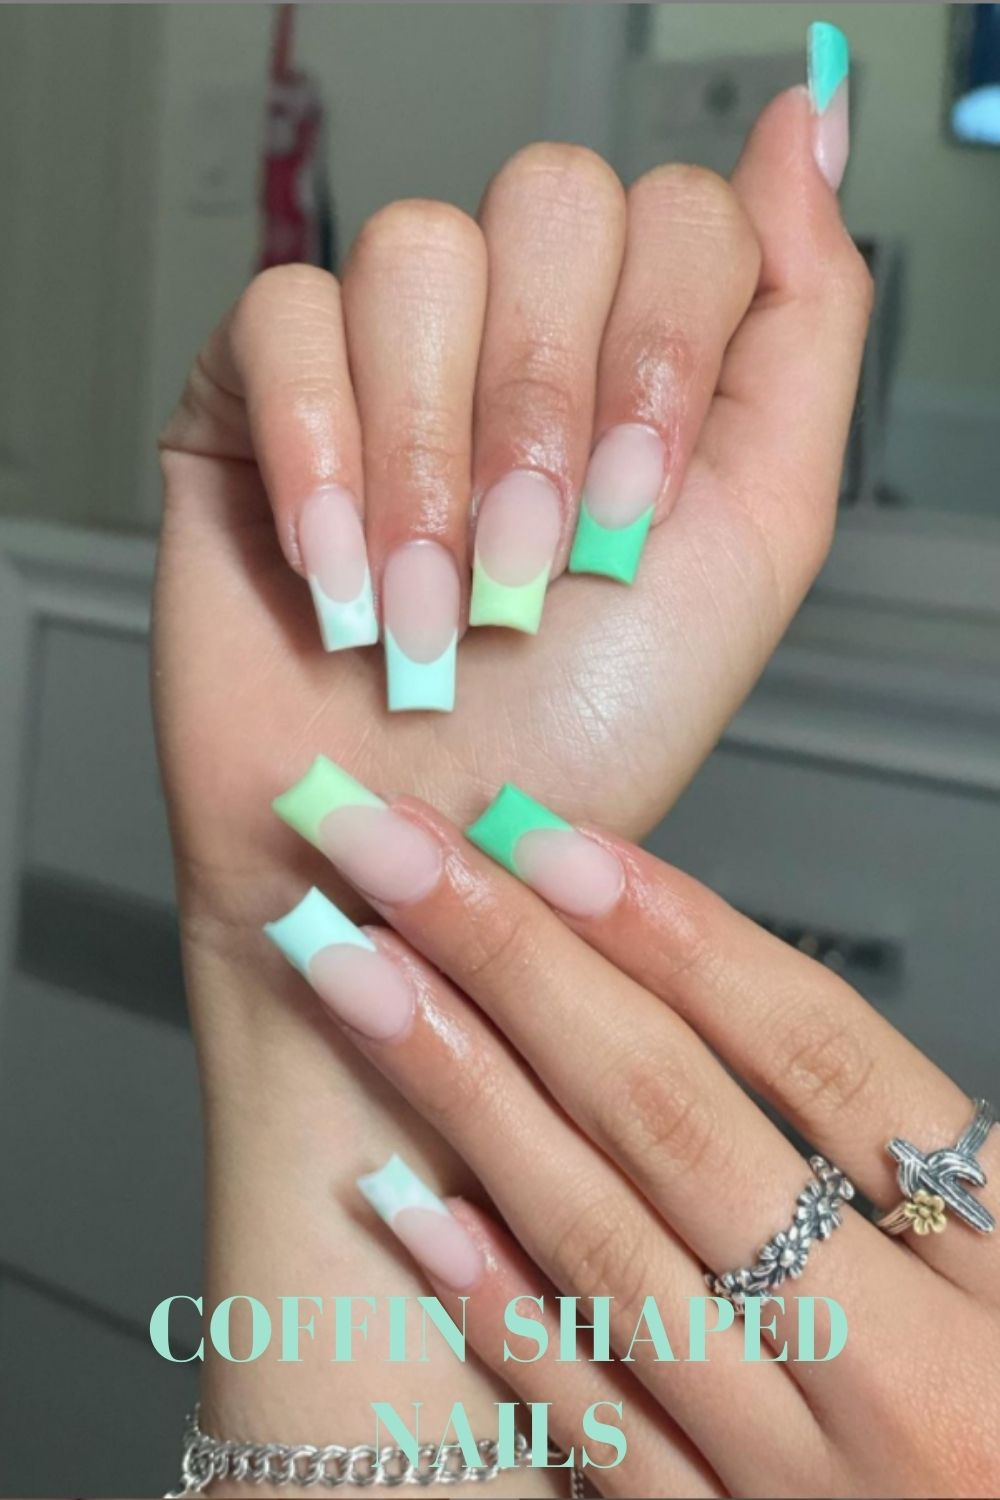 Neon green and white tip coffin nail design